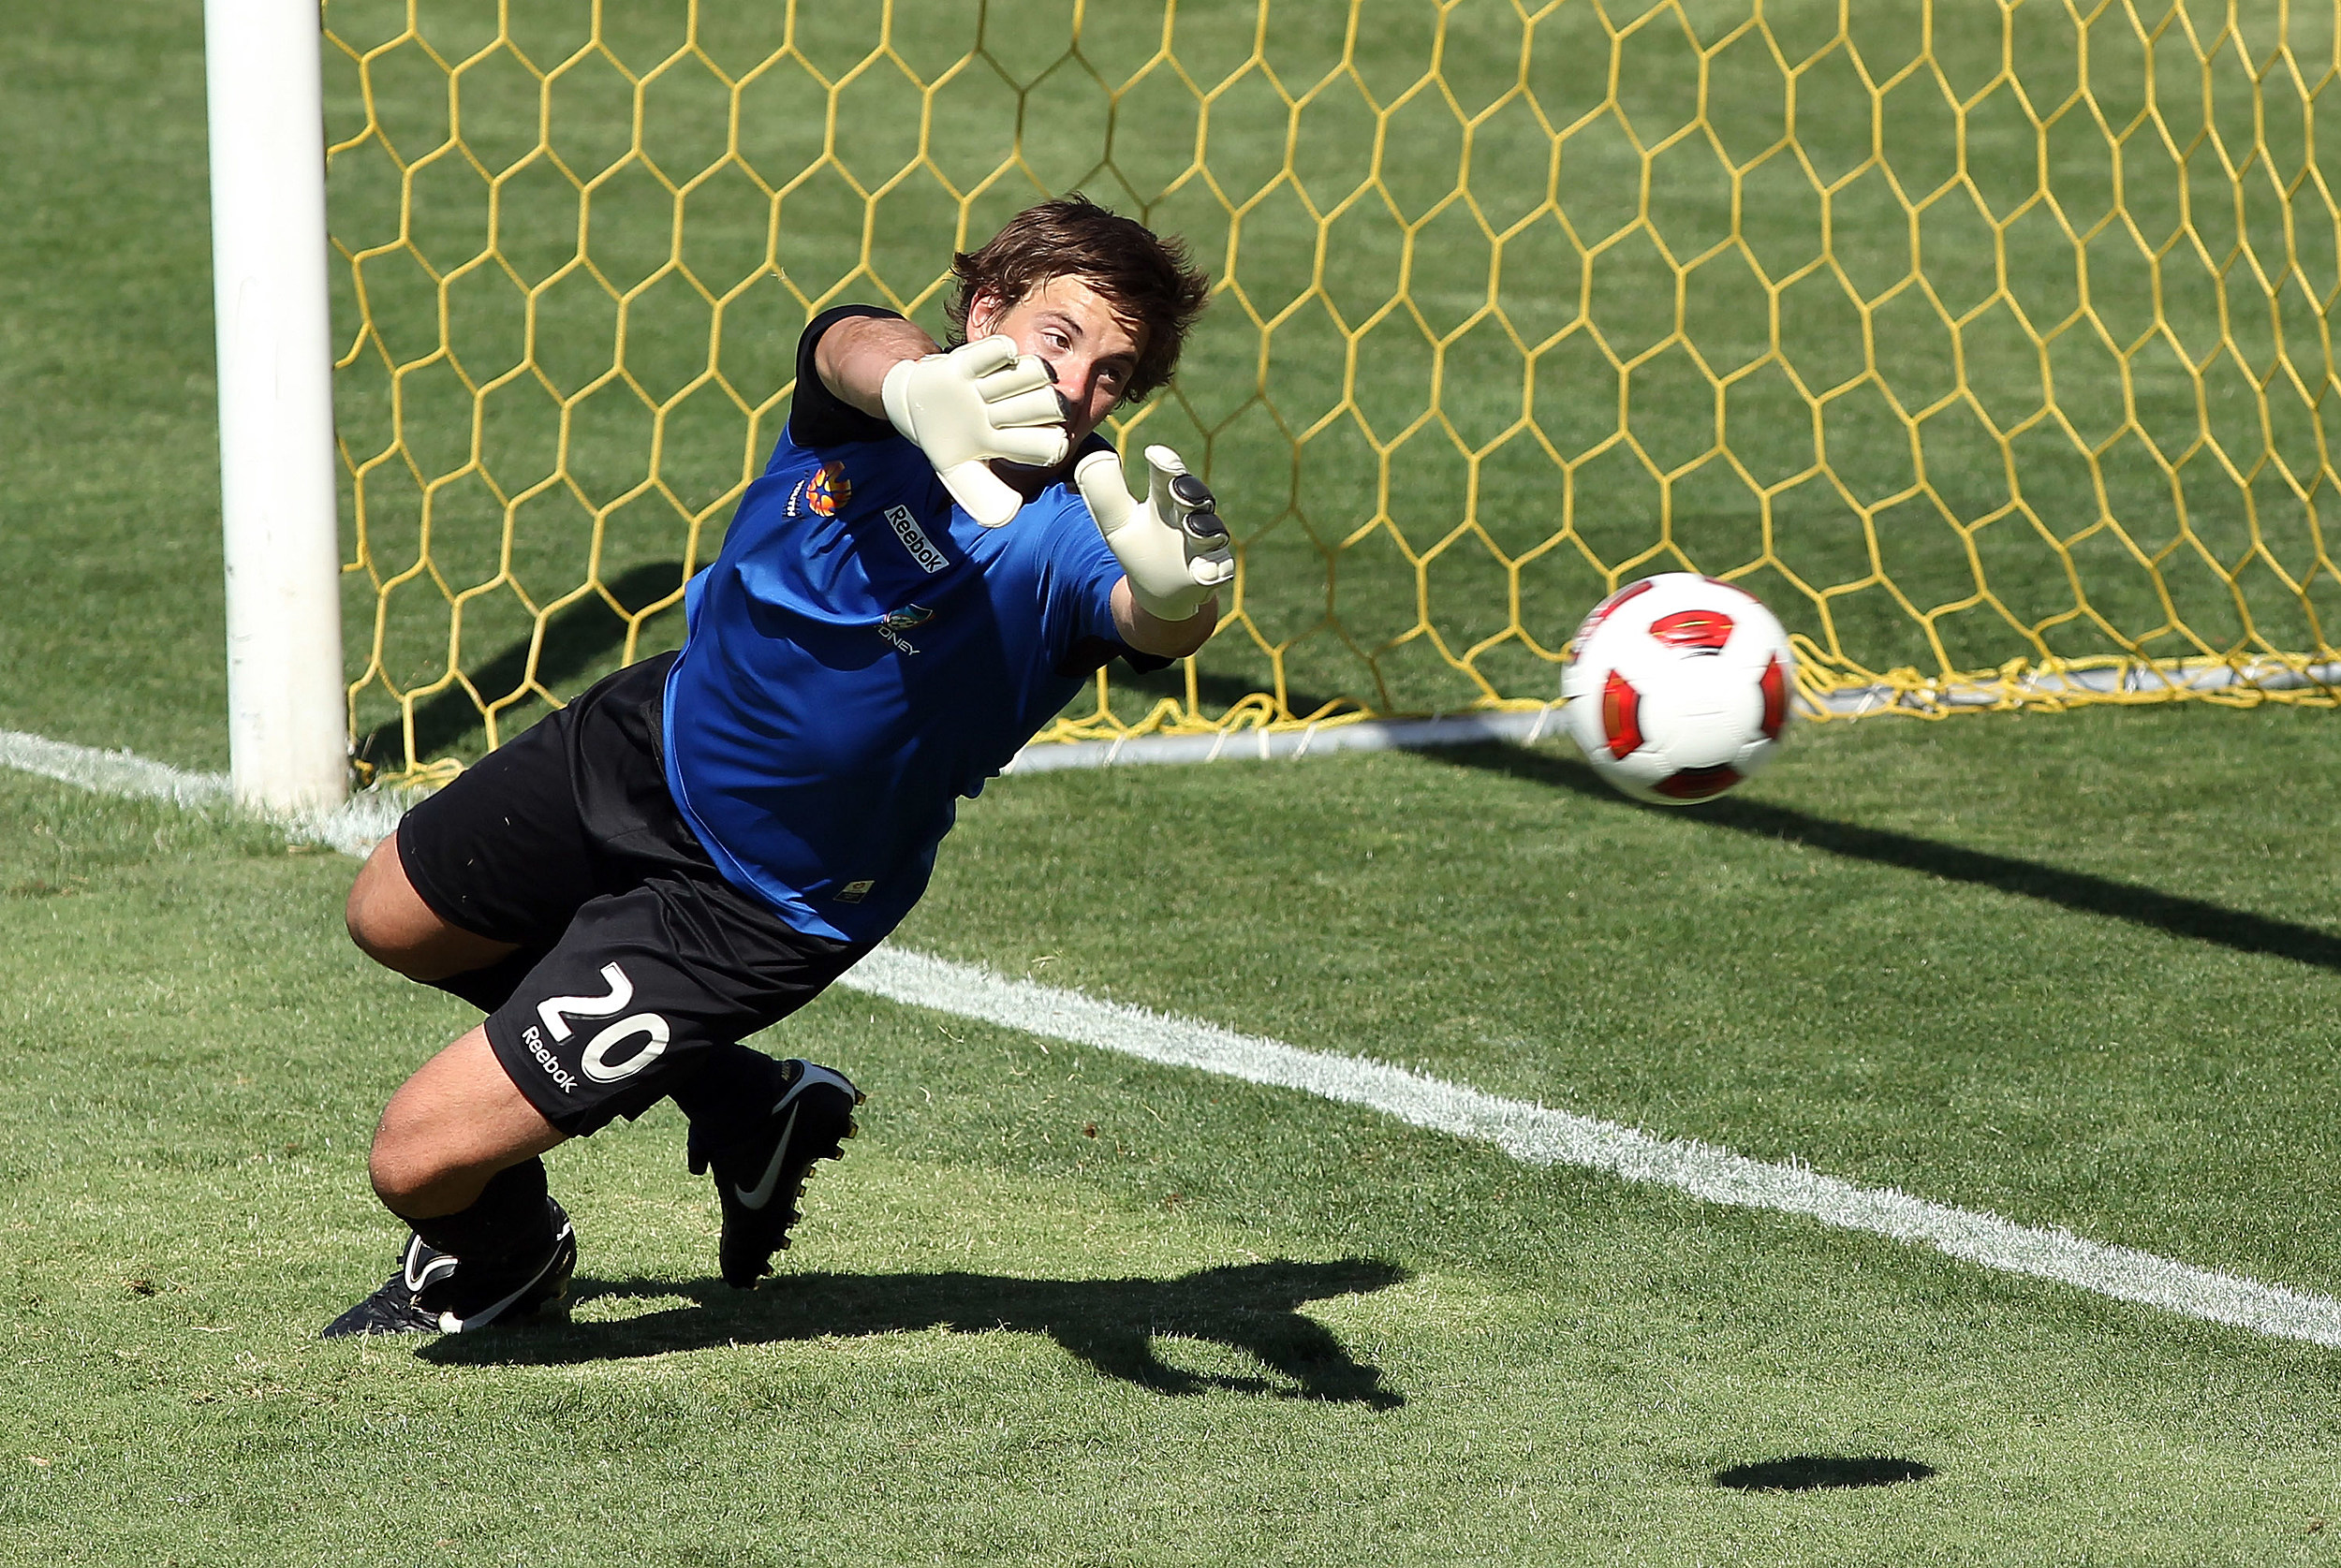 005 Essay Example Soccer Goalie Vs Football Compare And Excellent Contrast Full